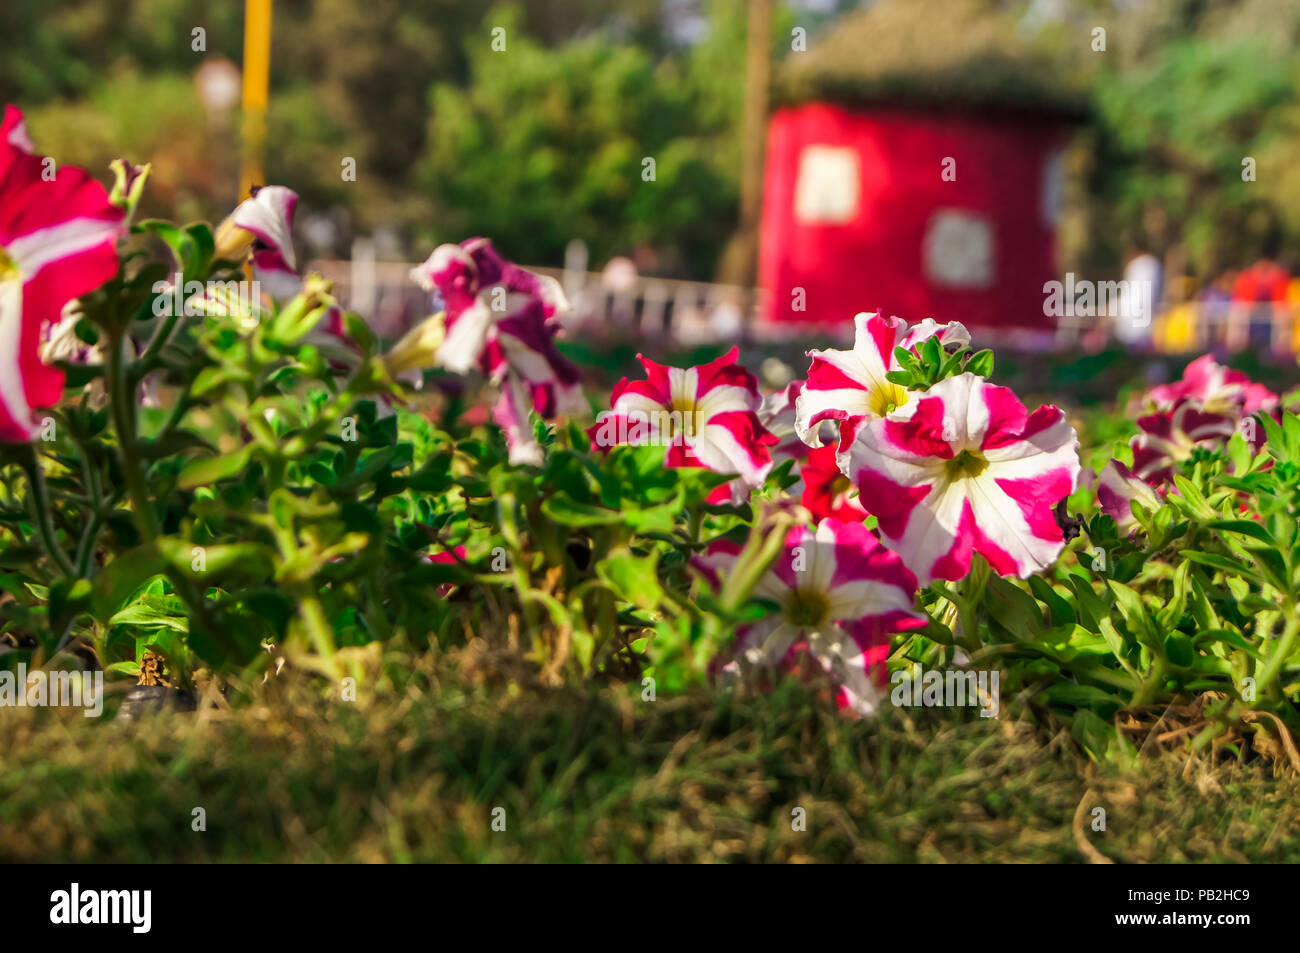 Beautiful Flower arrangements and decoration in the garden. Stock Photo